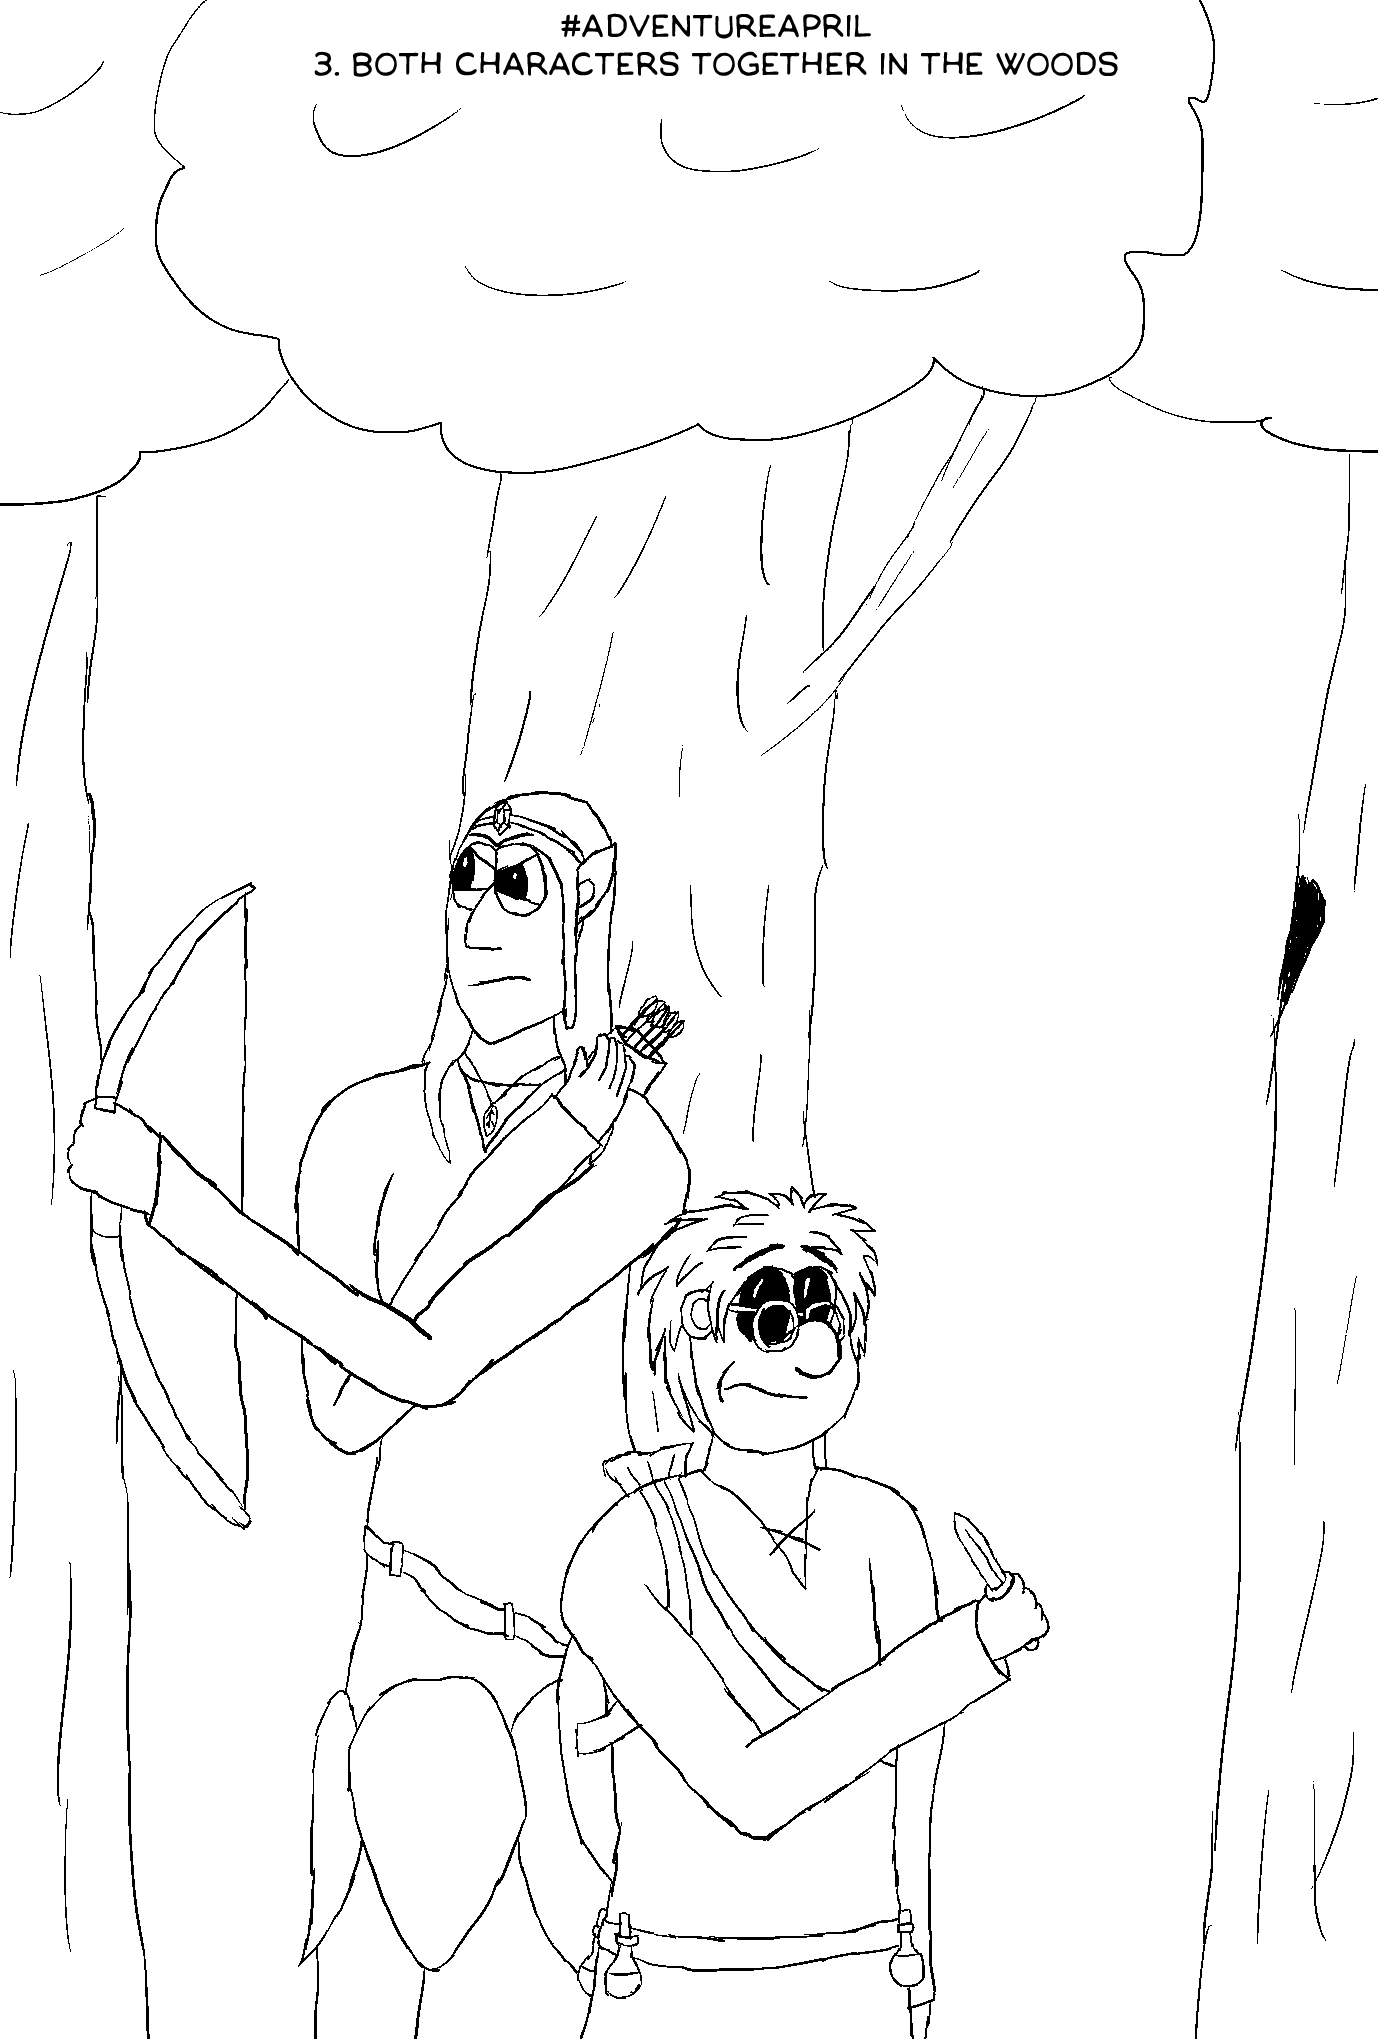 AA3: Both Characters Together in the Woods